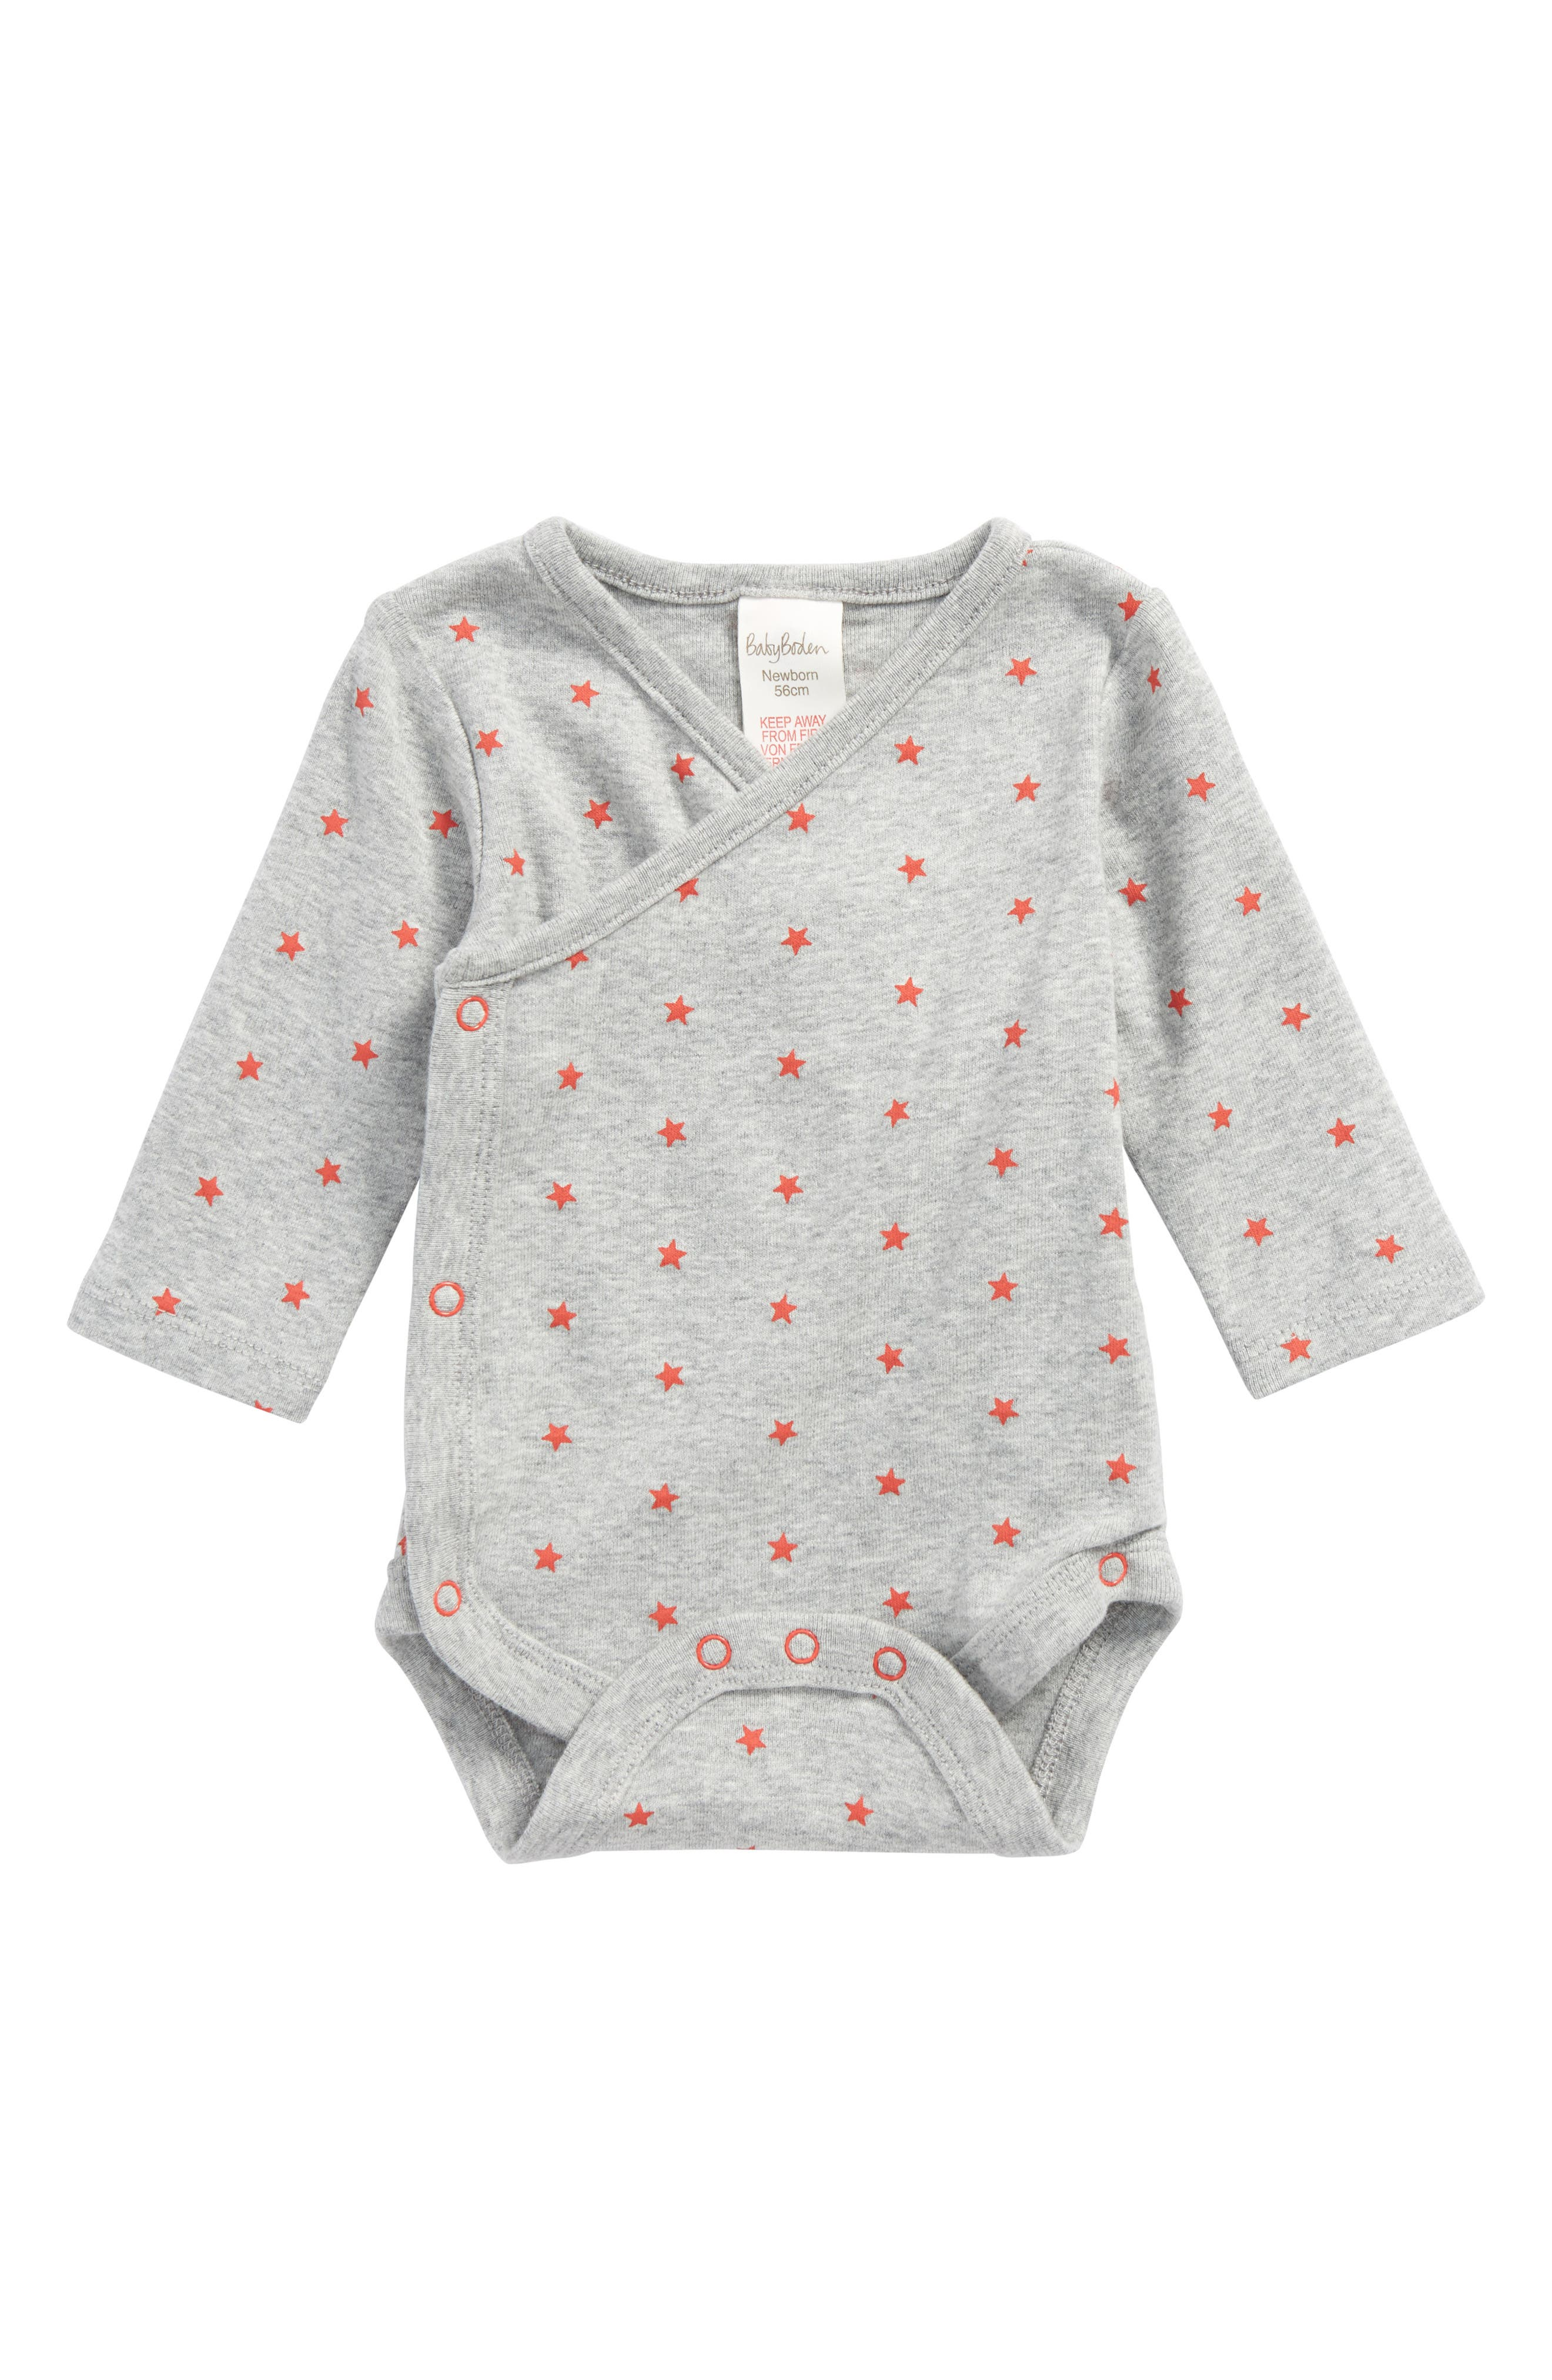 Fun Organic Cotton Wrap Bodysuit,                         Main,                         color, Grey Marl/ Crayon Red